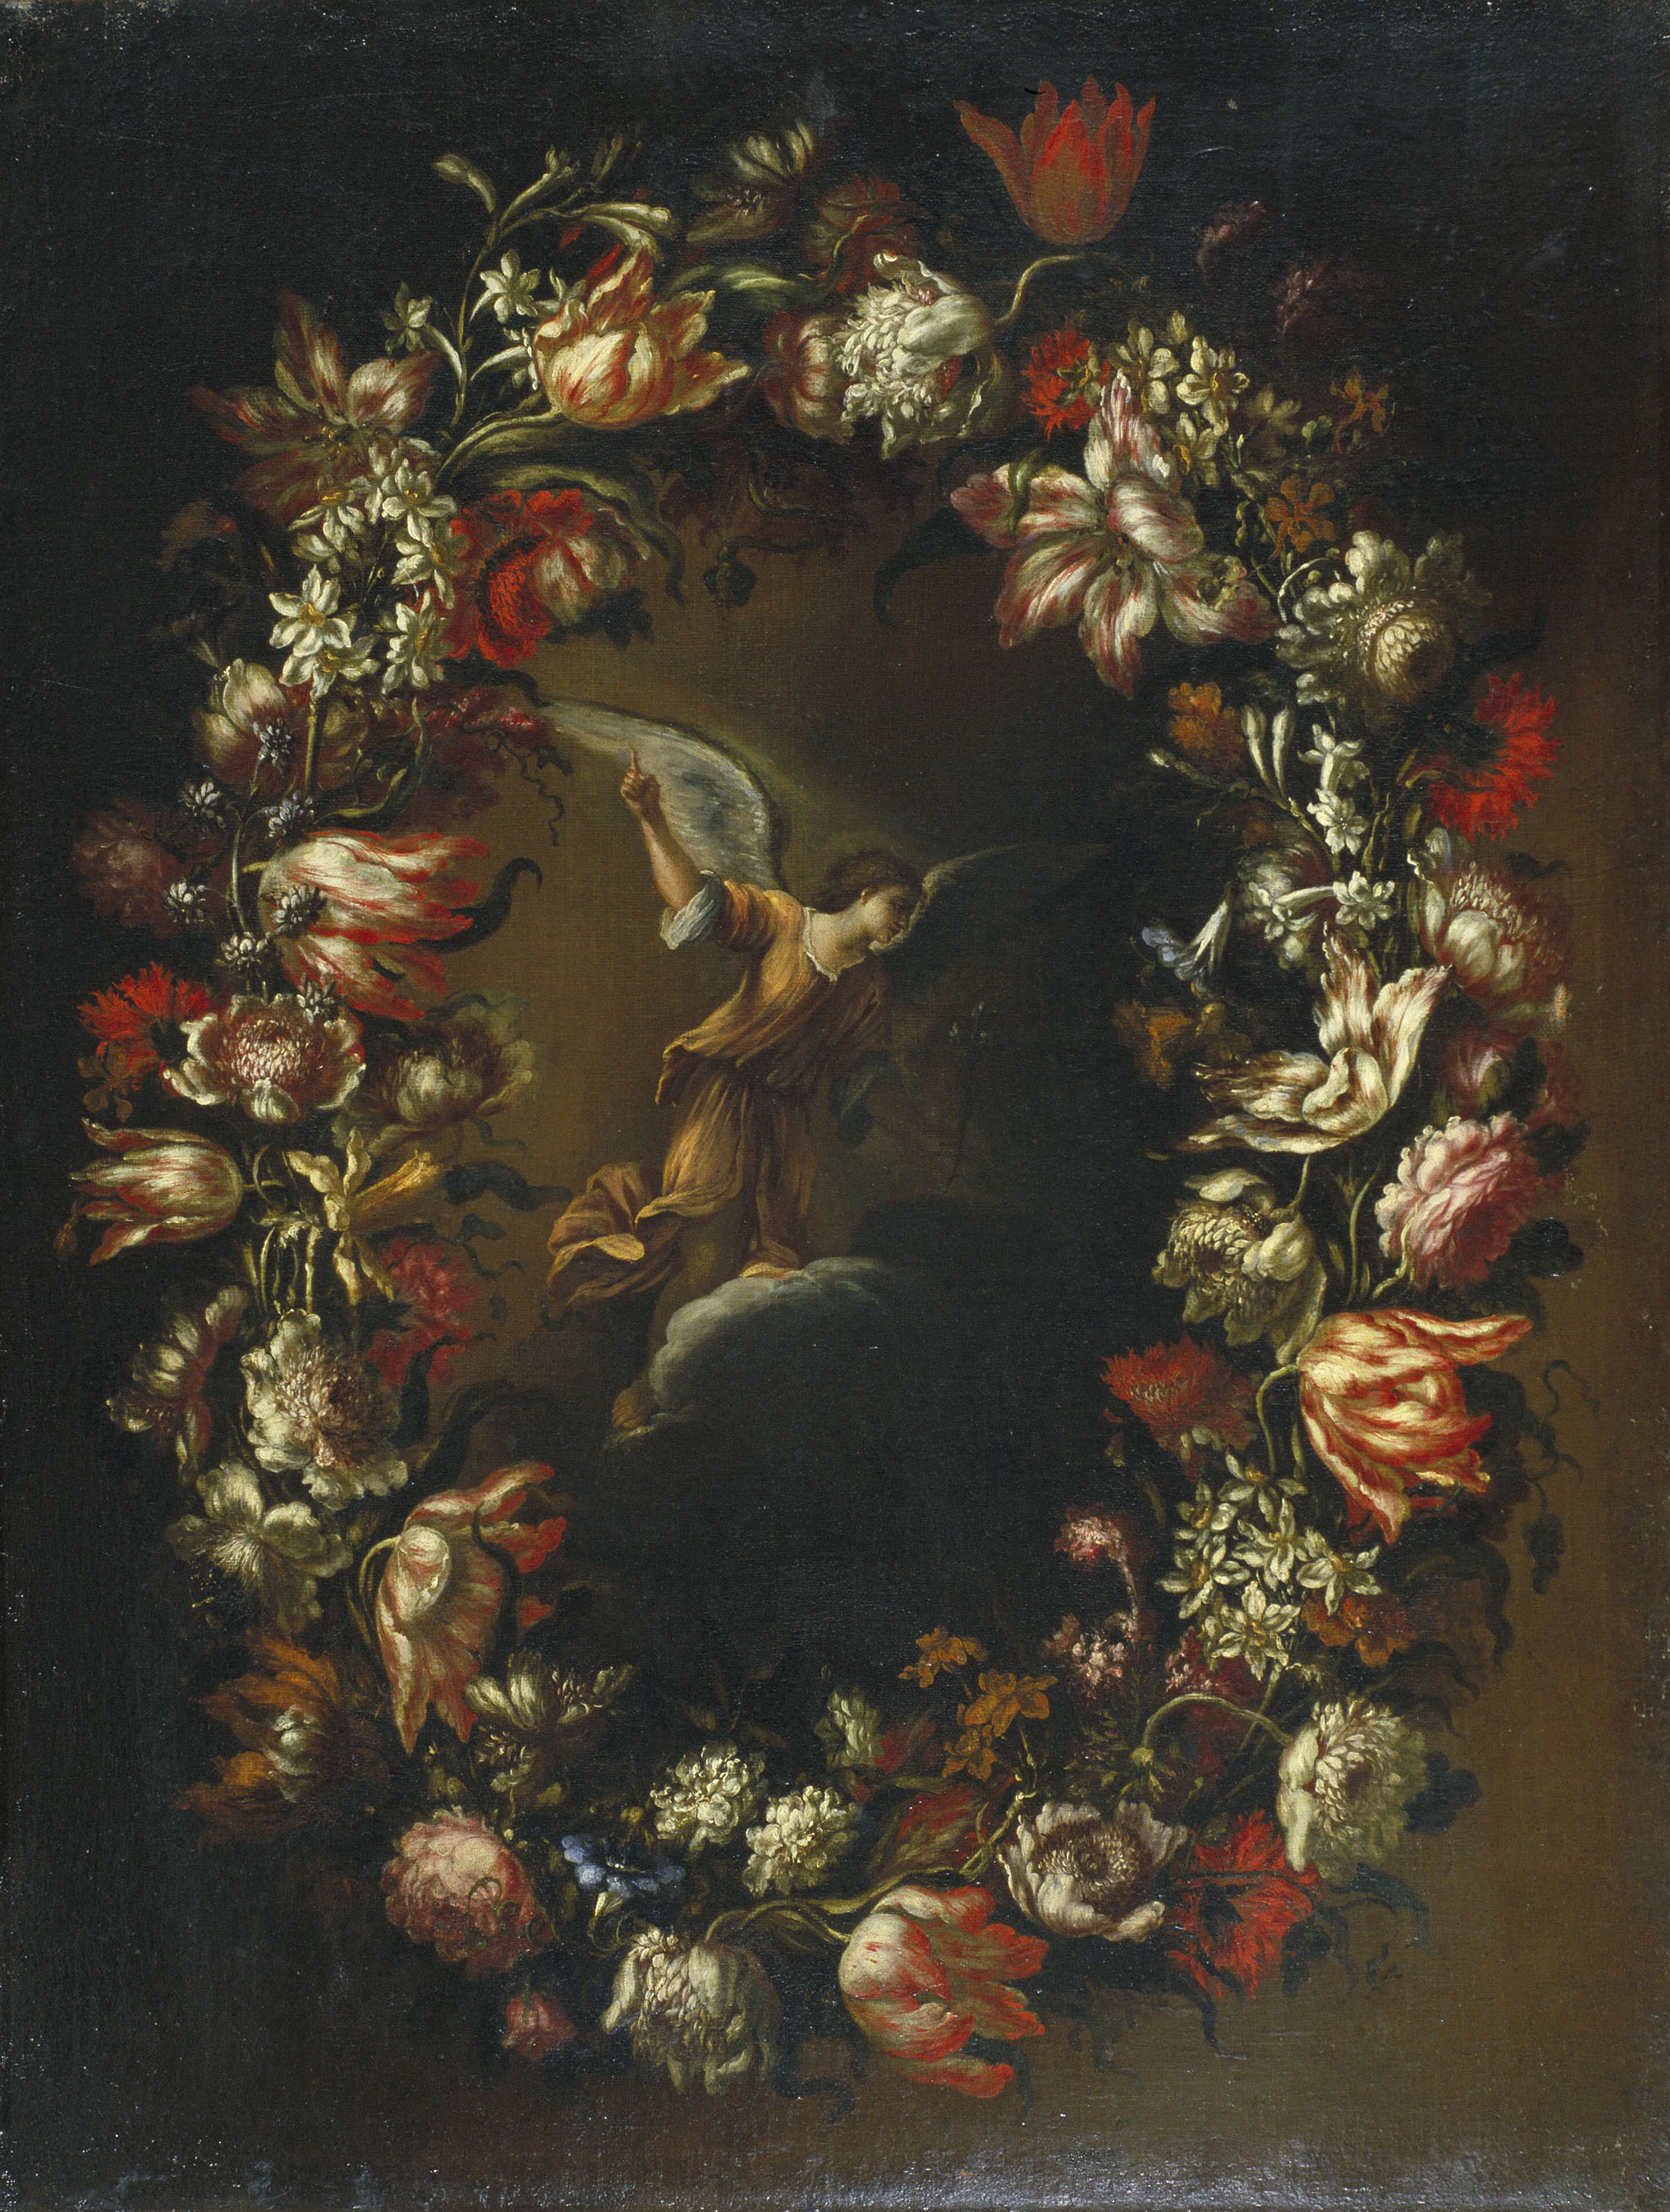 Bartolomé Pérez - Garland of Flowers with Saint Gabriel Archangel - Circa 1676